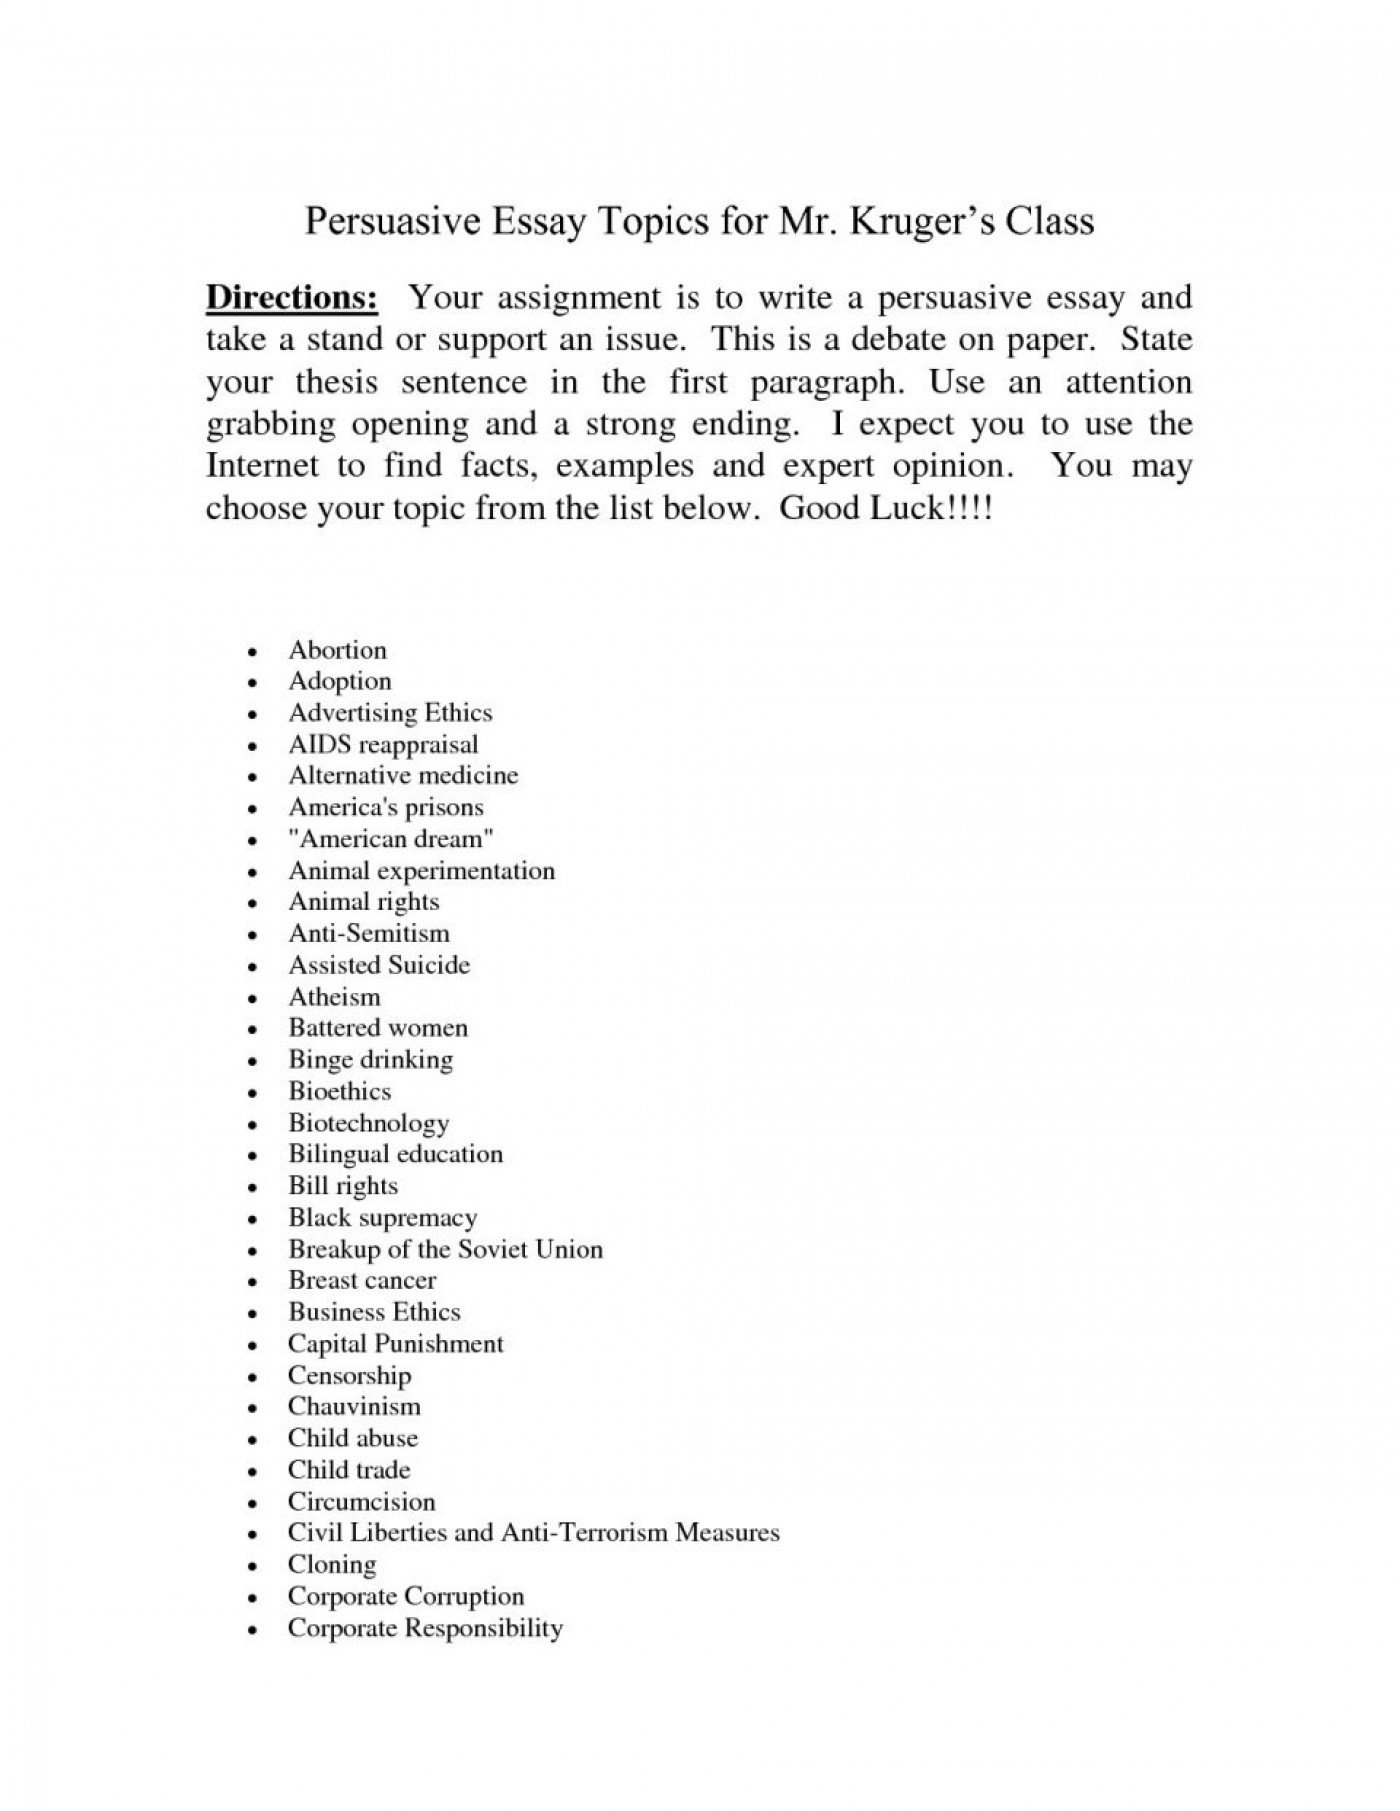 001 Research Paper Topic For Essay Barca Fontanacountryinn Within Good Persuasive Narrative Topics To Write Abo Easy About Personal Descriptive Informative Synthesis College 960x1242 Beautiful American History Middle School Students 1400